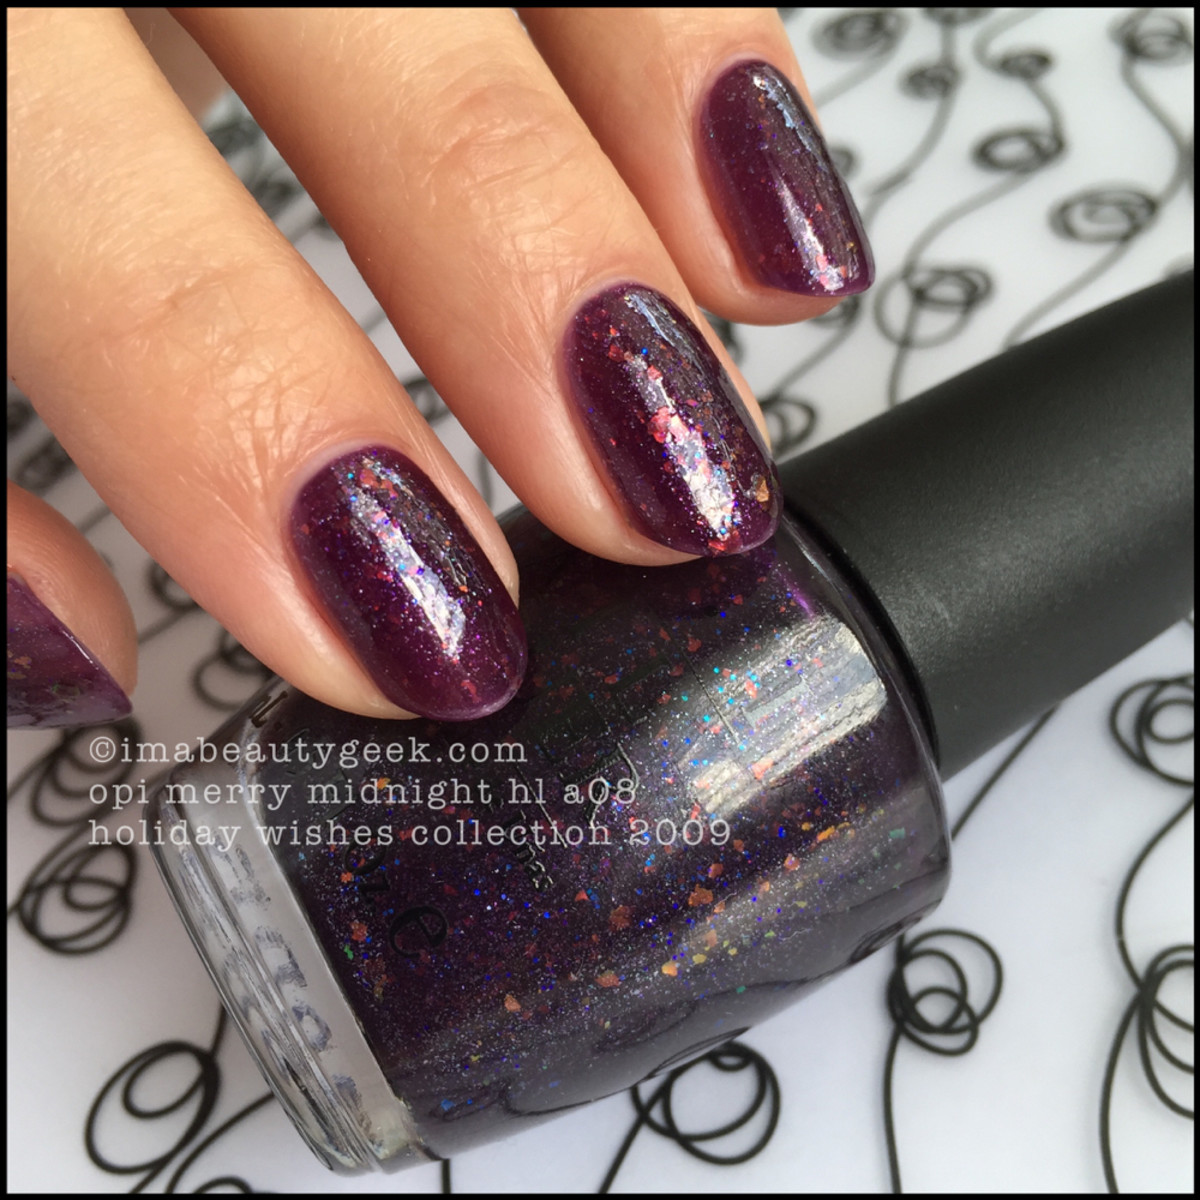 OPI Merry Midnight 2009 Holiday Wishes Collection